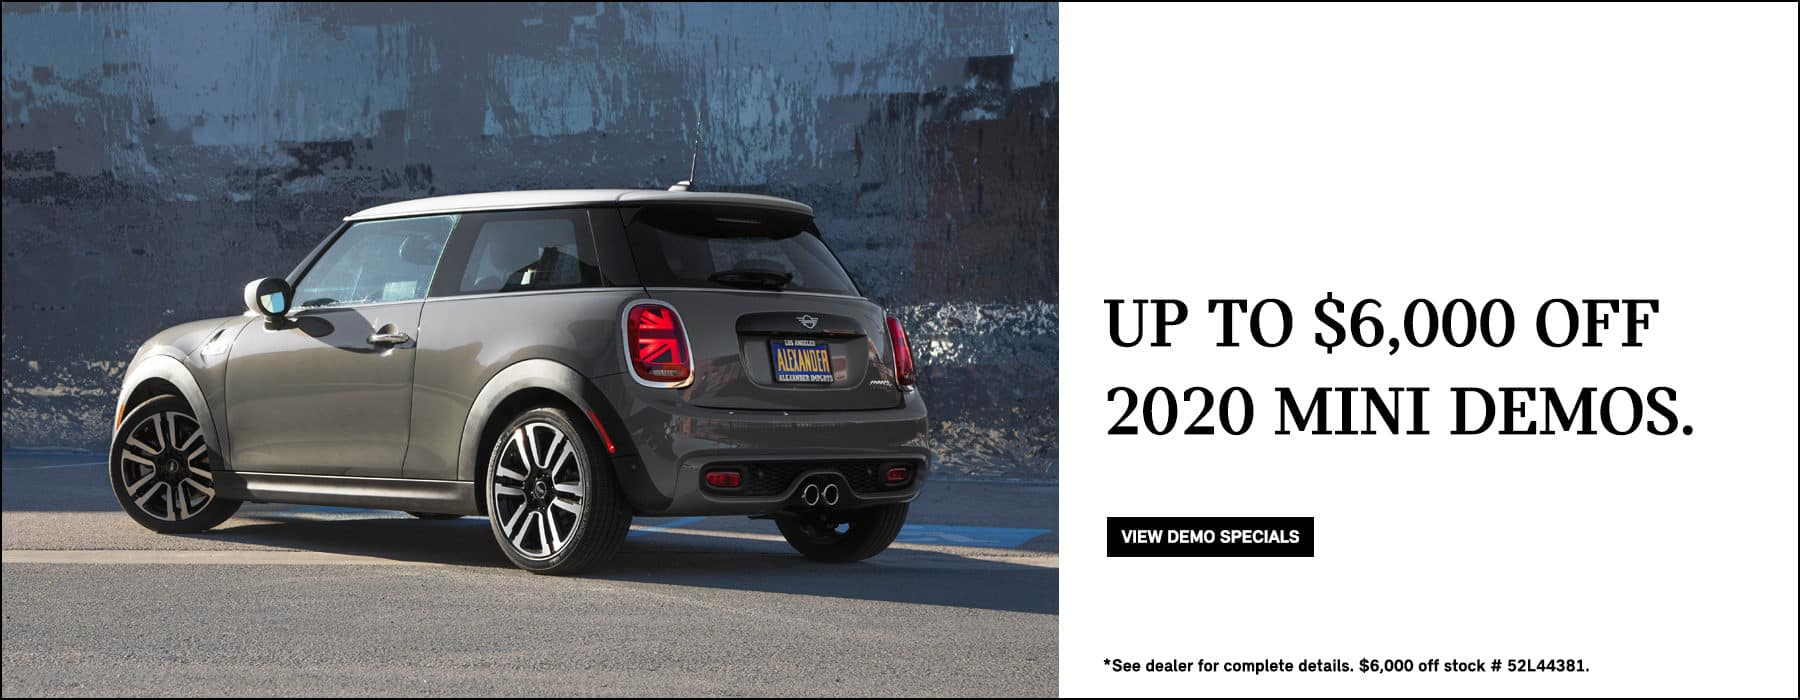 Up to $6,000 off 2020 MINI demos. See dealer for complete details. $6,000 off stock # 52L44381.